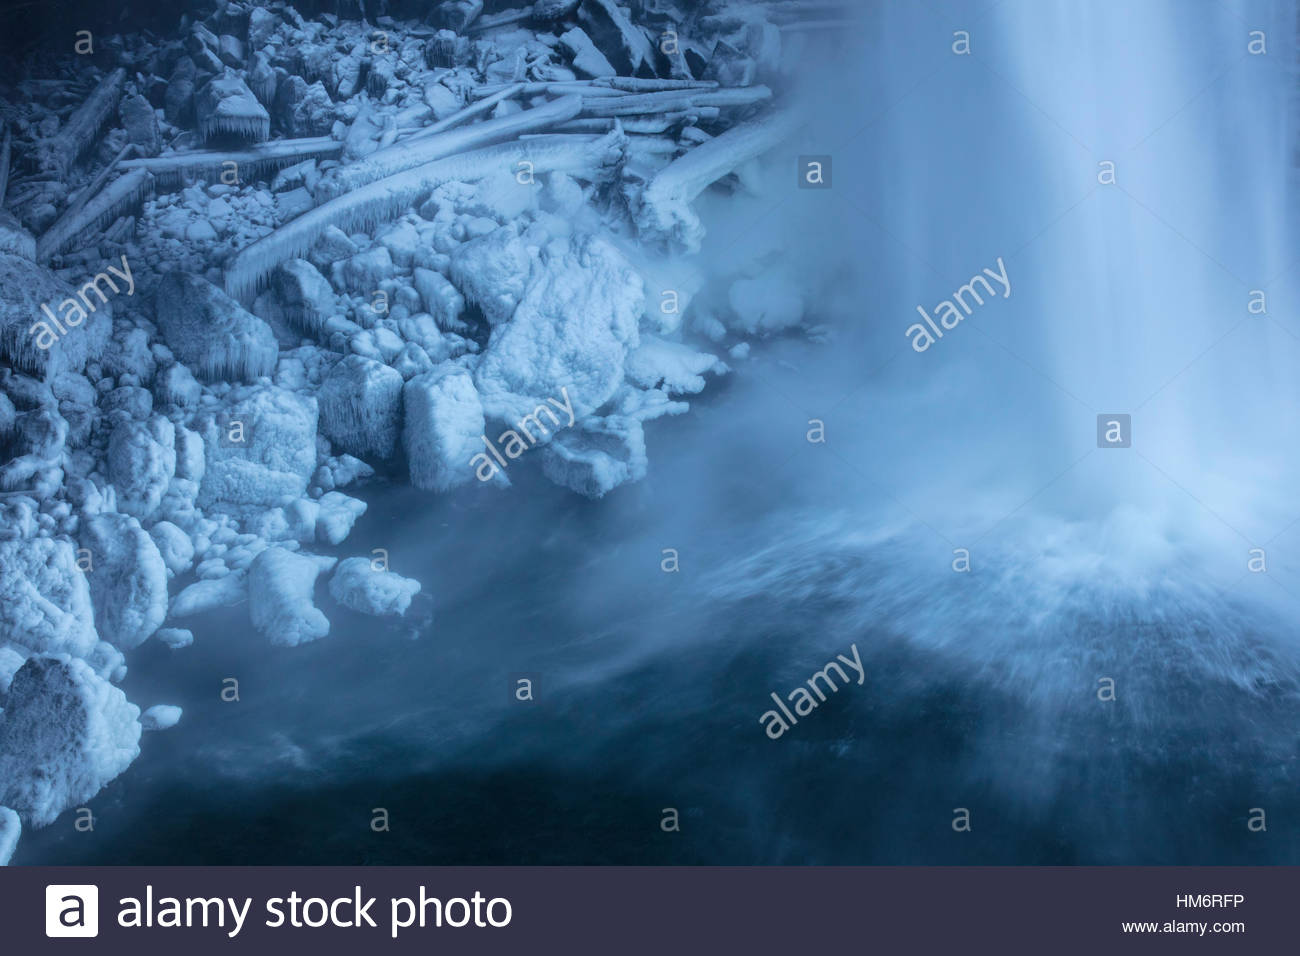 Spray from Snoqualmie Falls, located near Snoqualmie, Washington, freezes to rocks and logs at the base of the waterfall - Stock Image